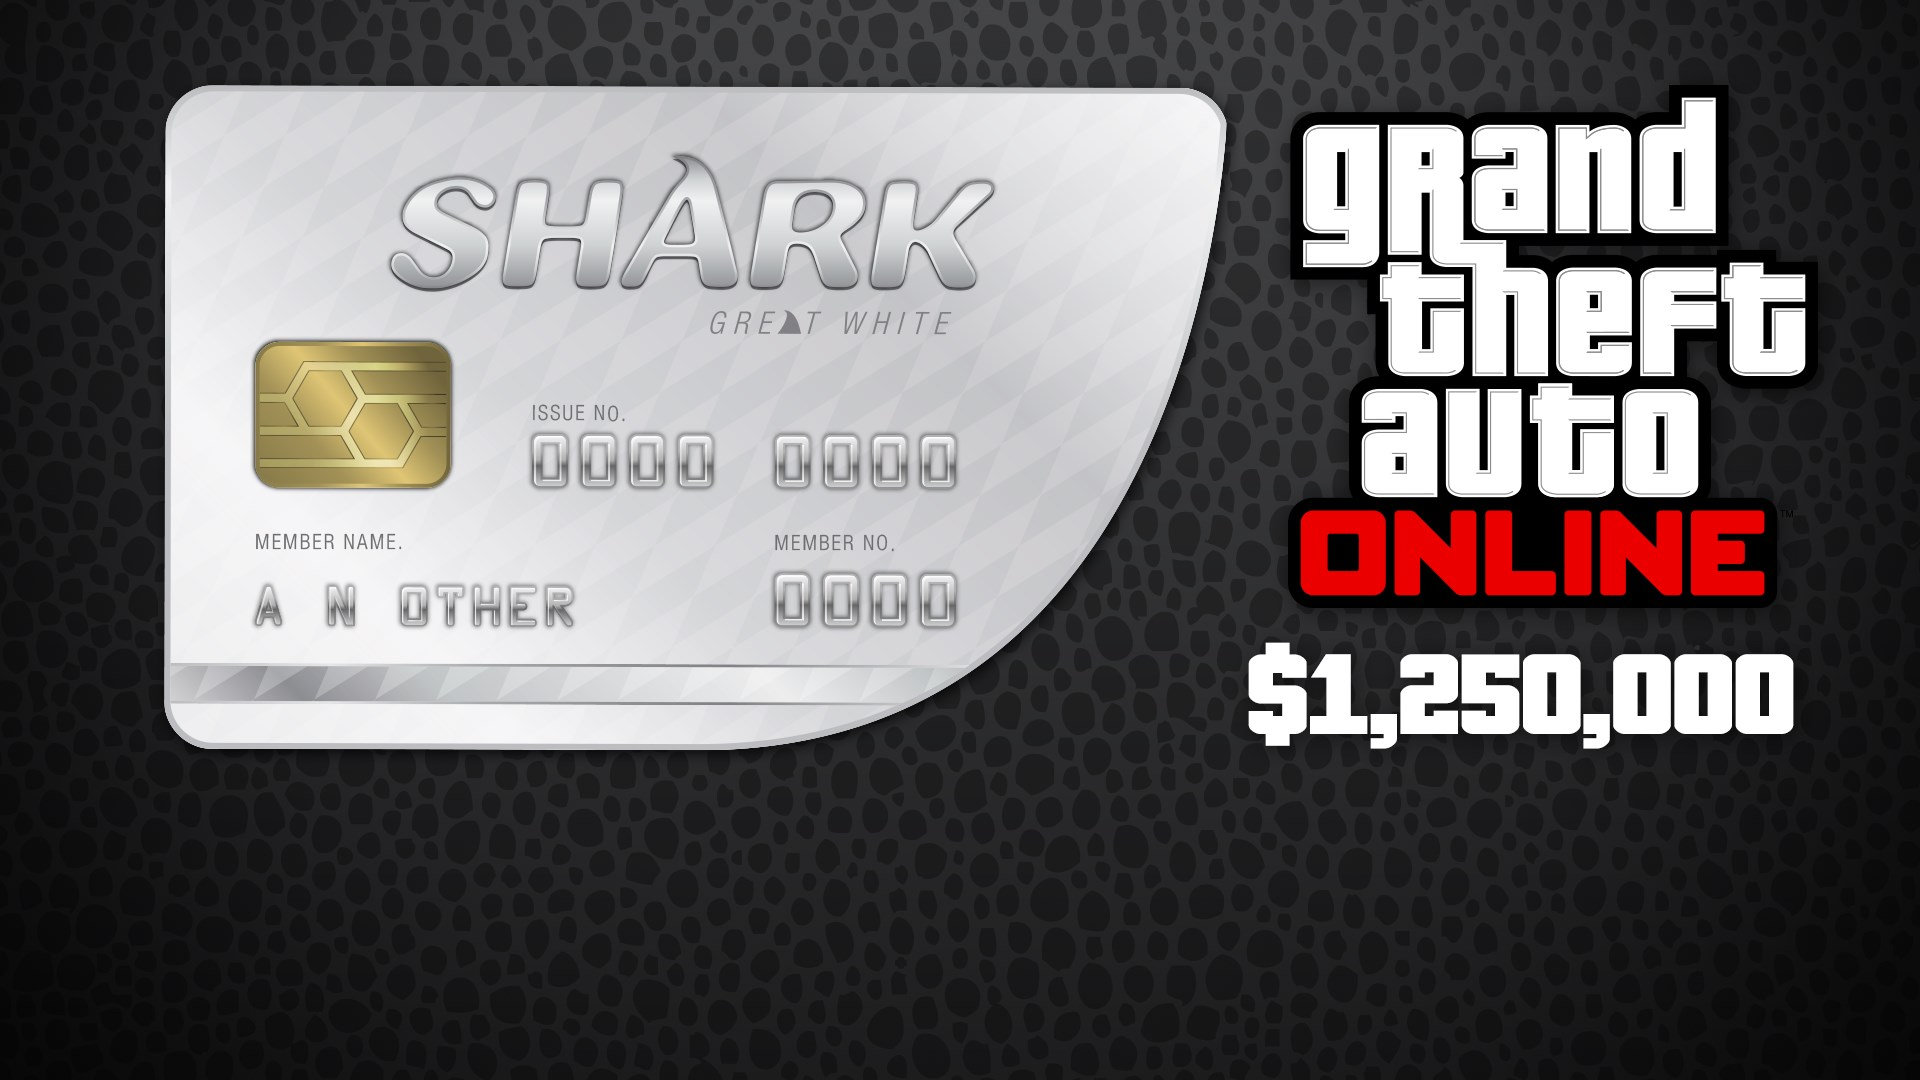 Buy Great White Shark Cash Card - Microsoft Store